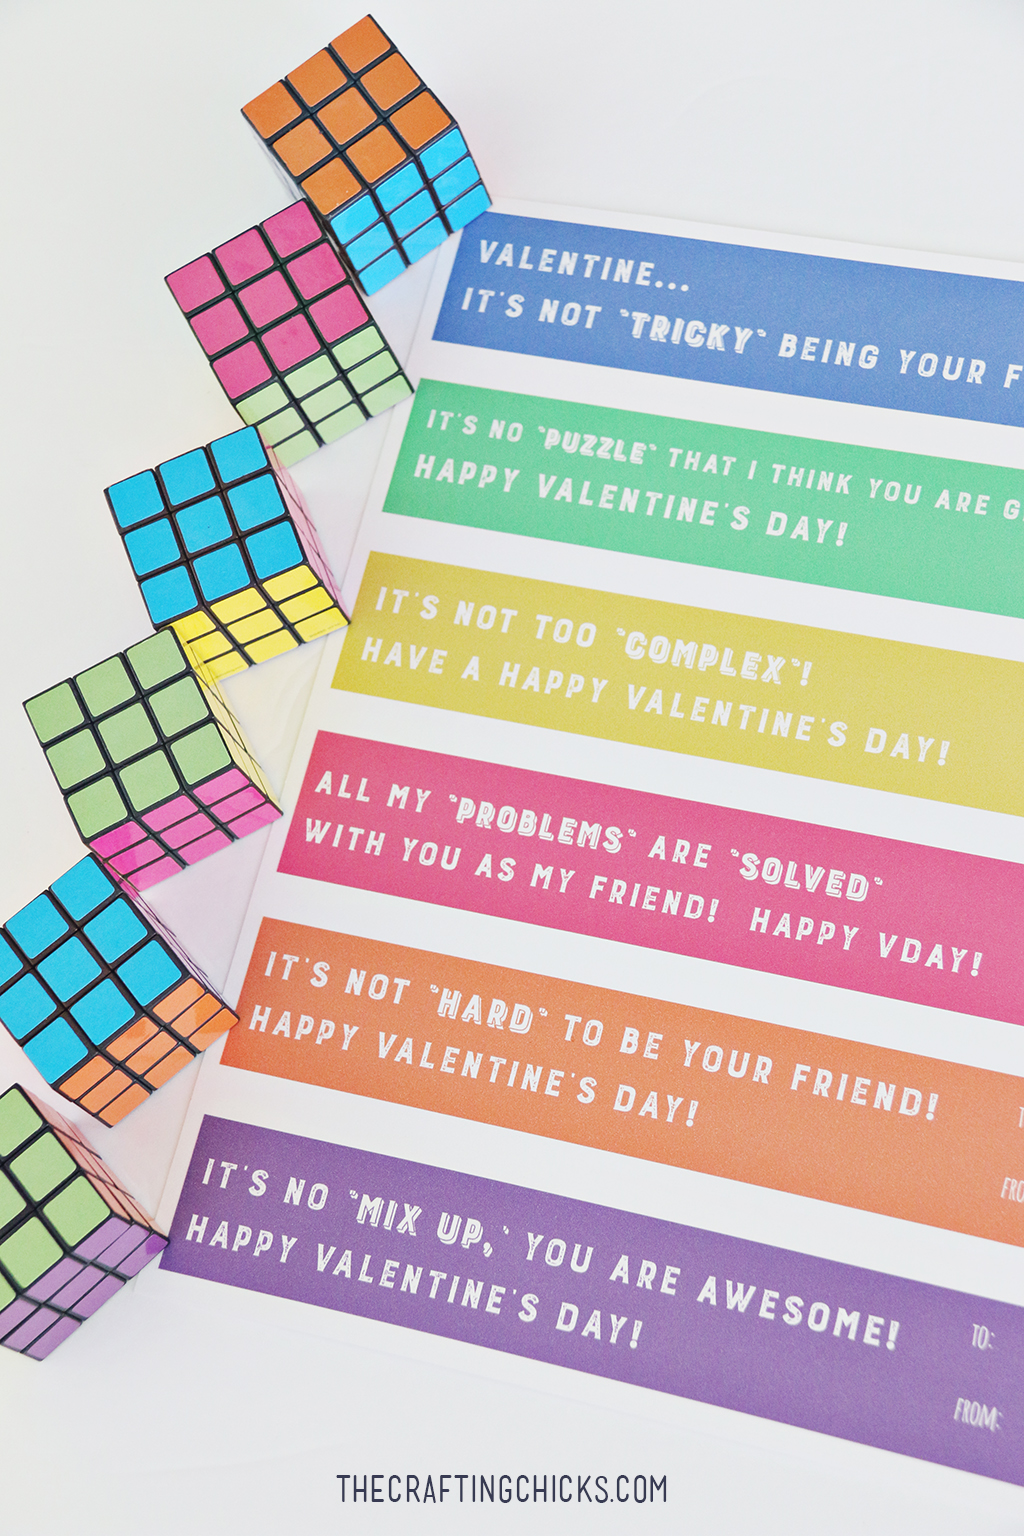 Rubix Cube Valentine Printables - A fun non-candy valentine for kids to share with their classmates!